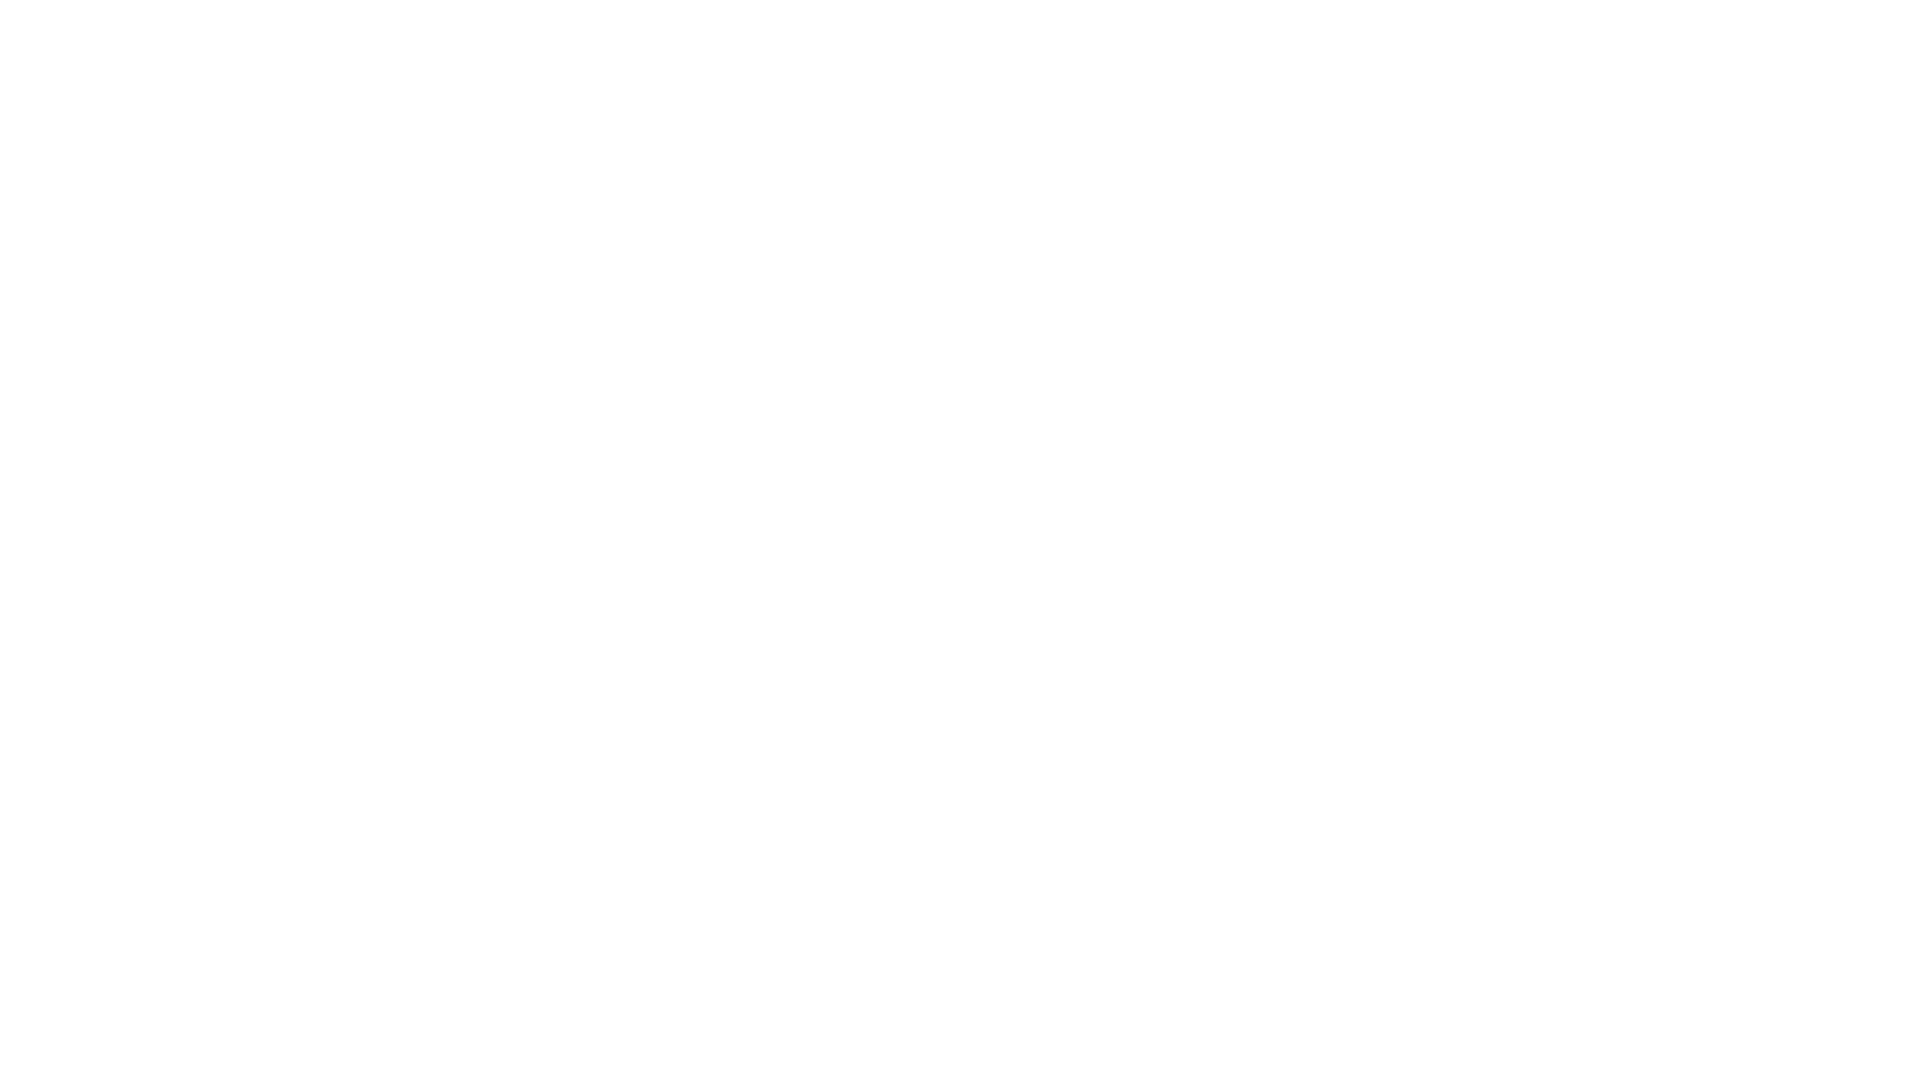 Podcast Period Episode 23 Star Wars And The Rise Of Skywalker